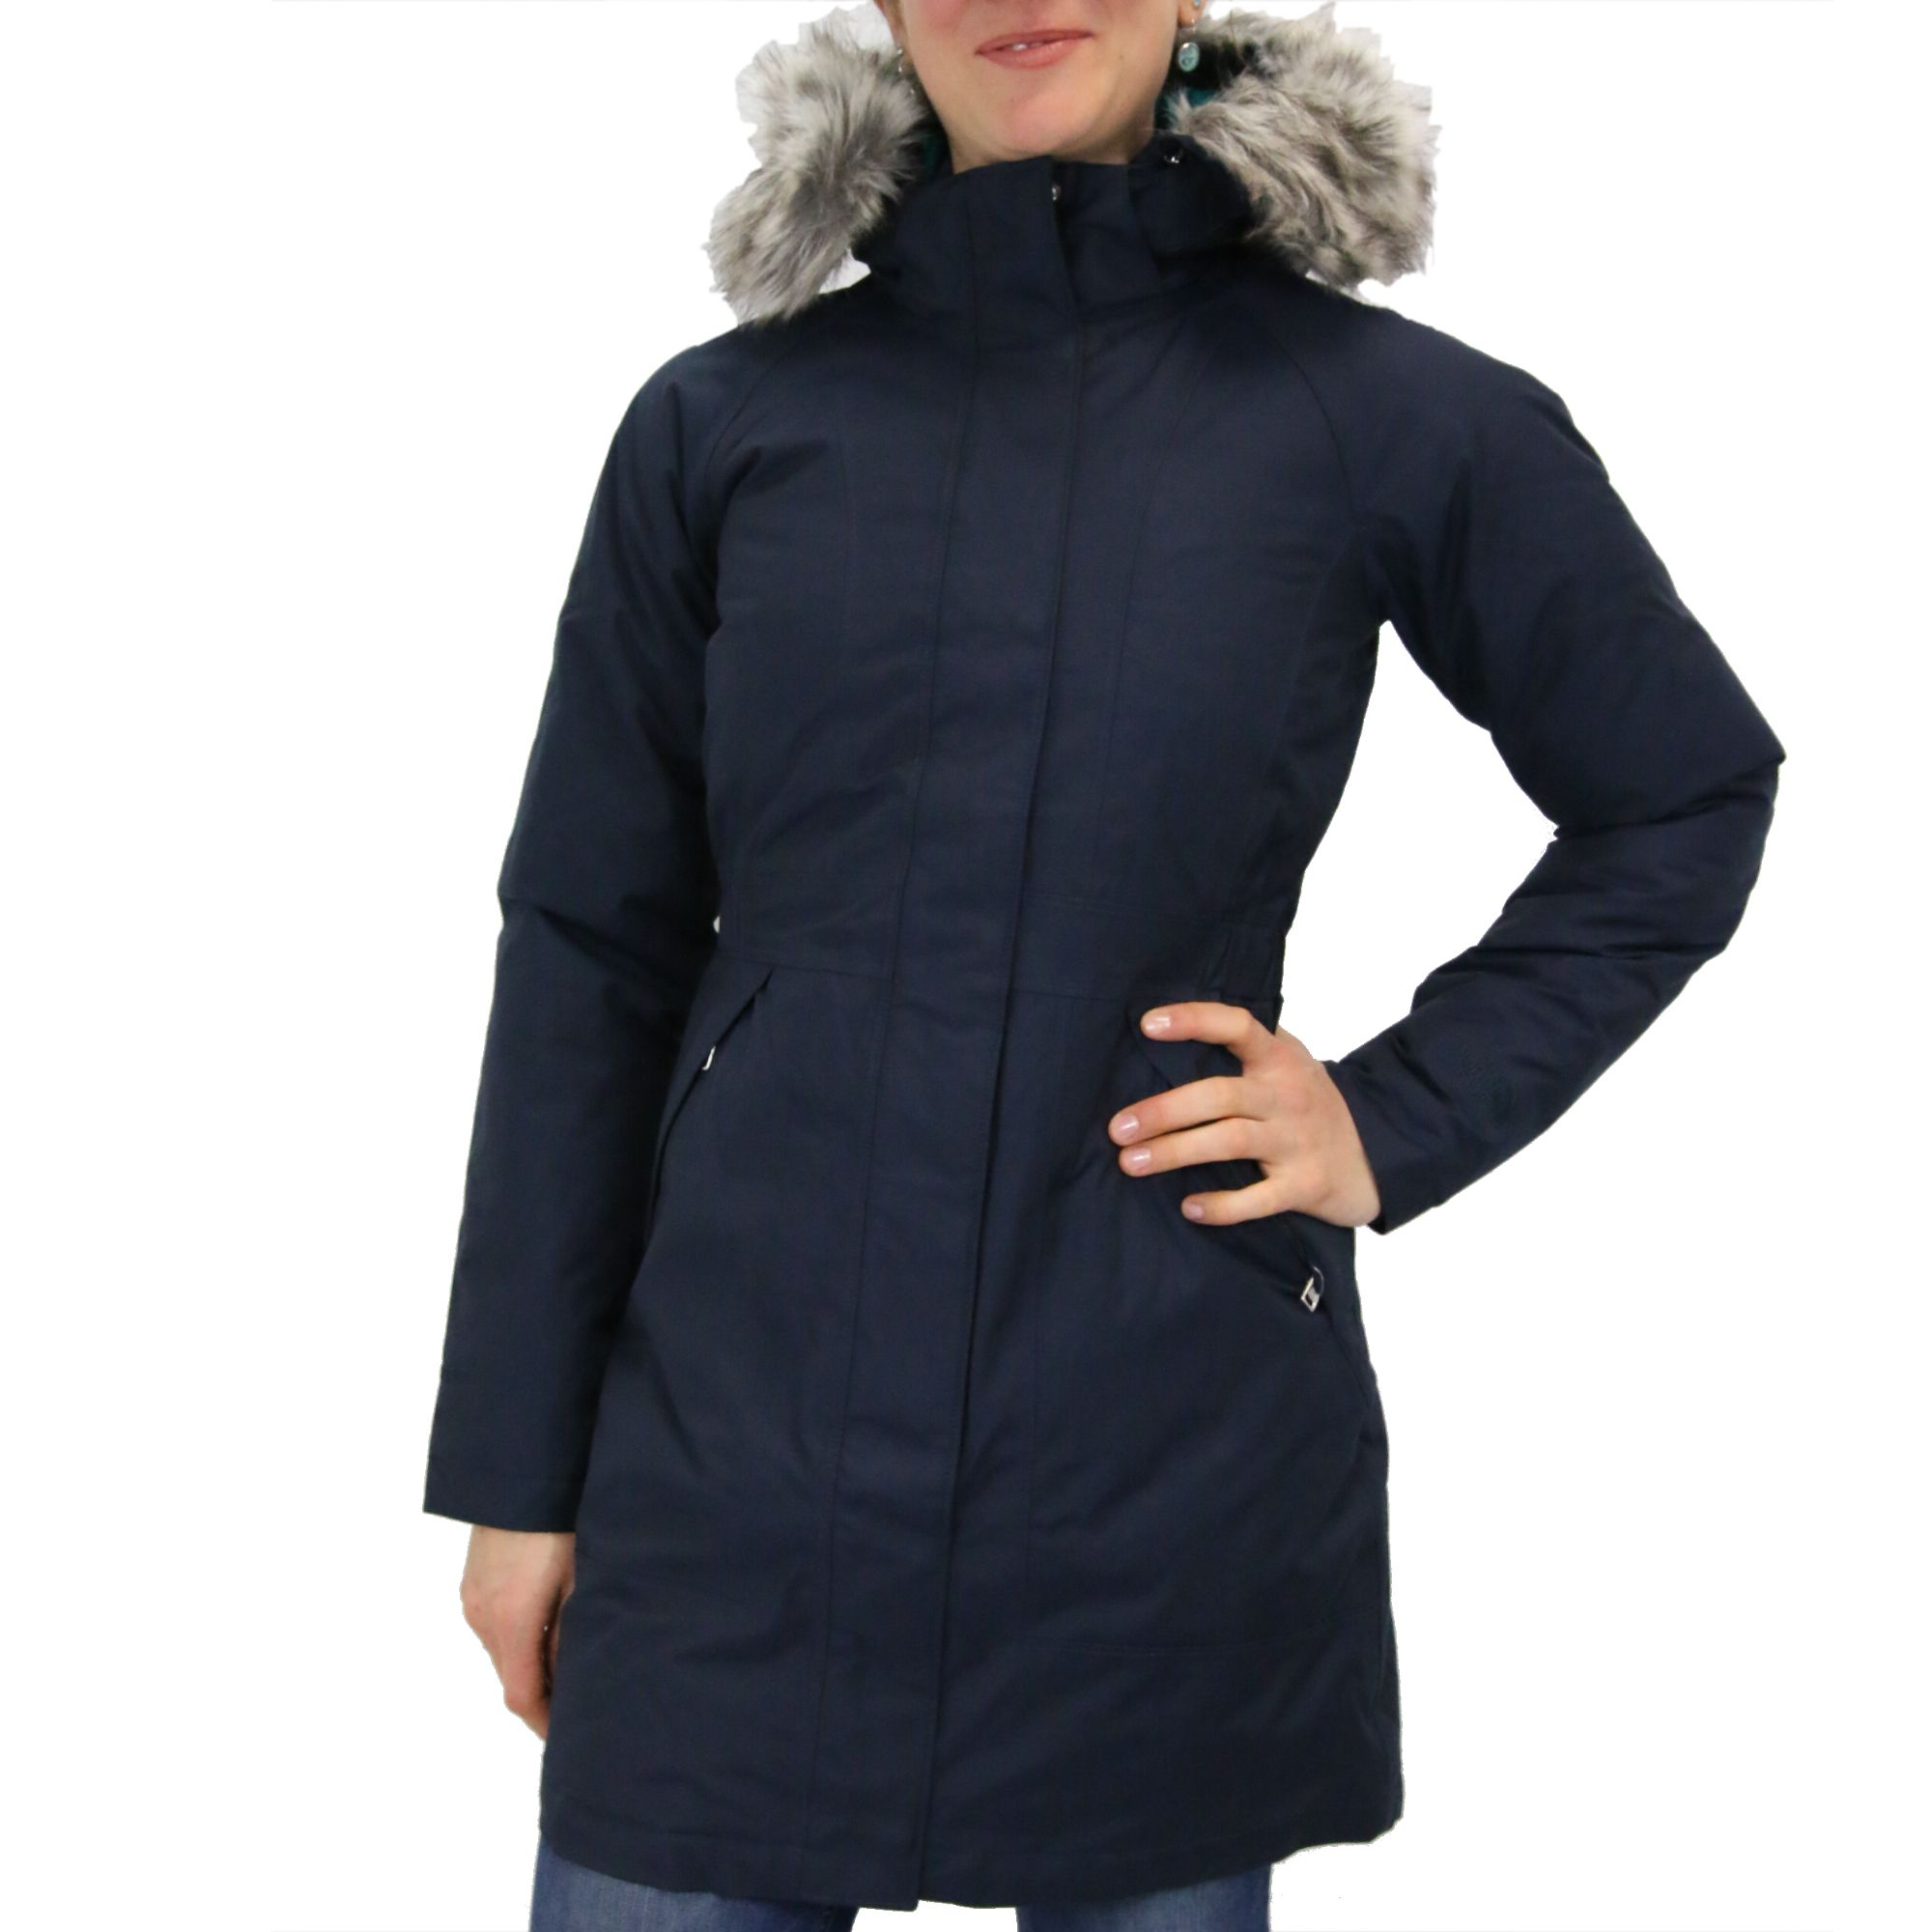 the north face arctic parka jacket coat winter jacket 550. Black Bedroom Furniture Sets. Home Design Ideas